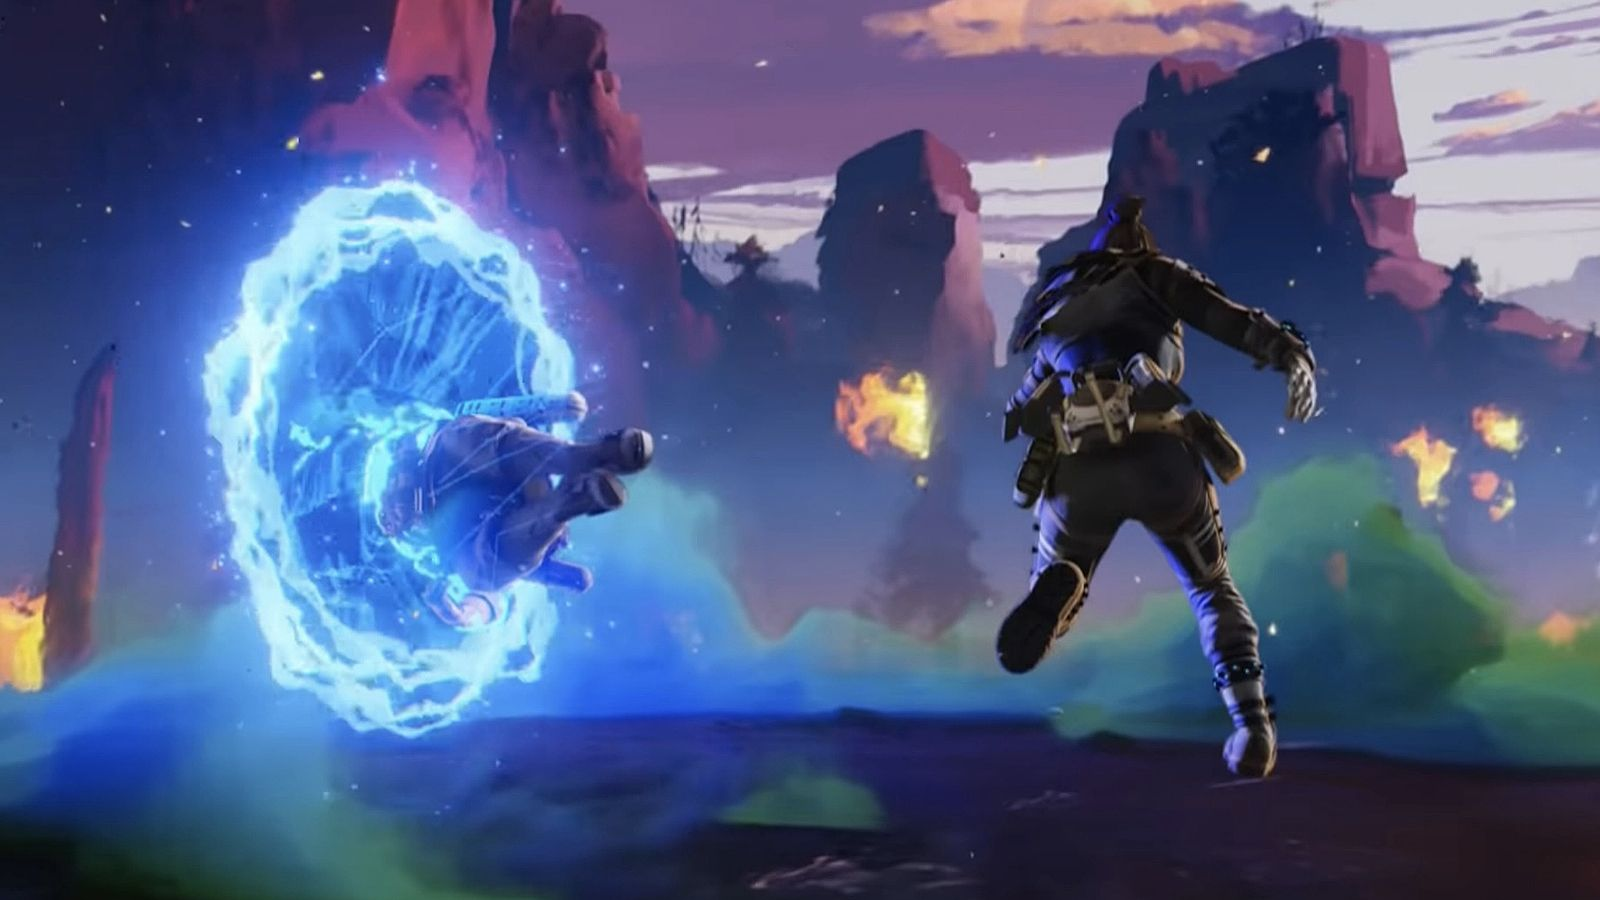 Wraith using her ultimate ability in Apex Legends.